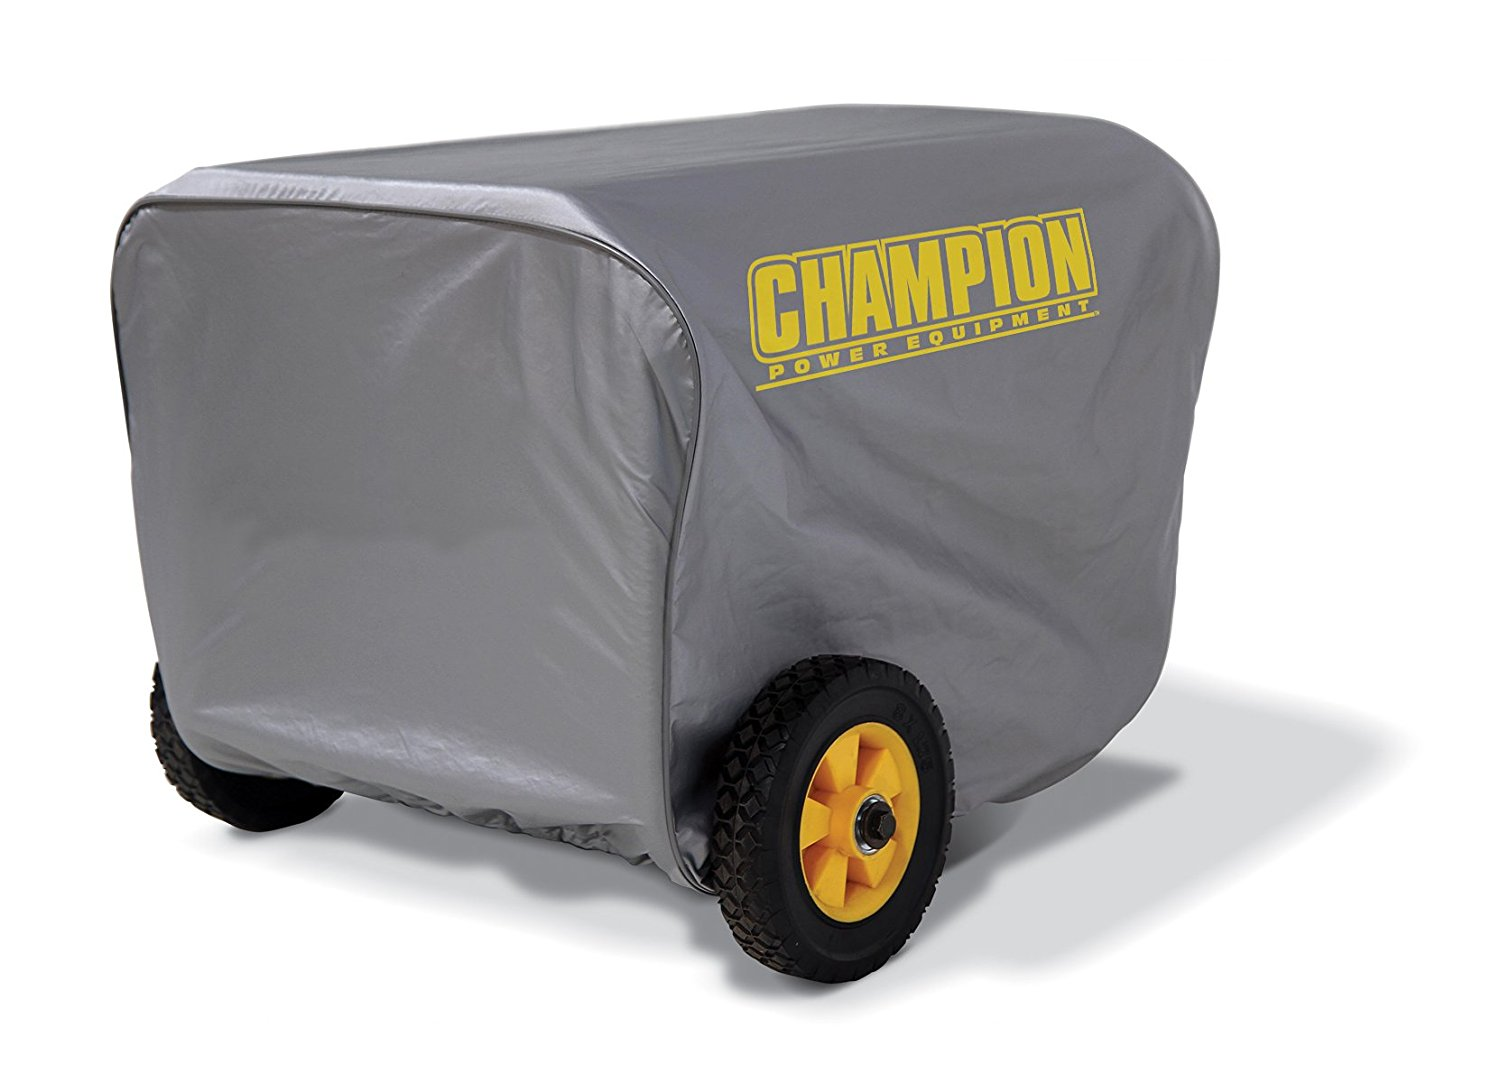 champion power equipment noc90011 generator cover for champion 3000w 4000w